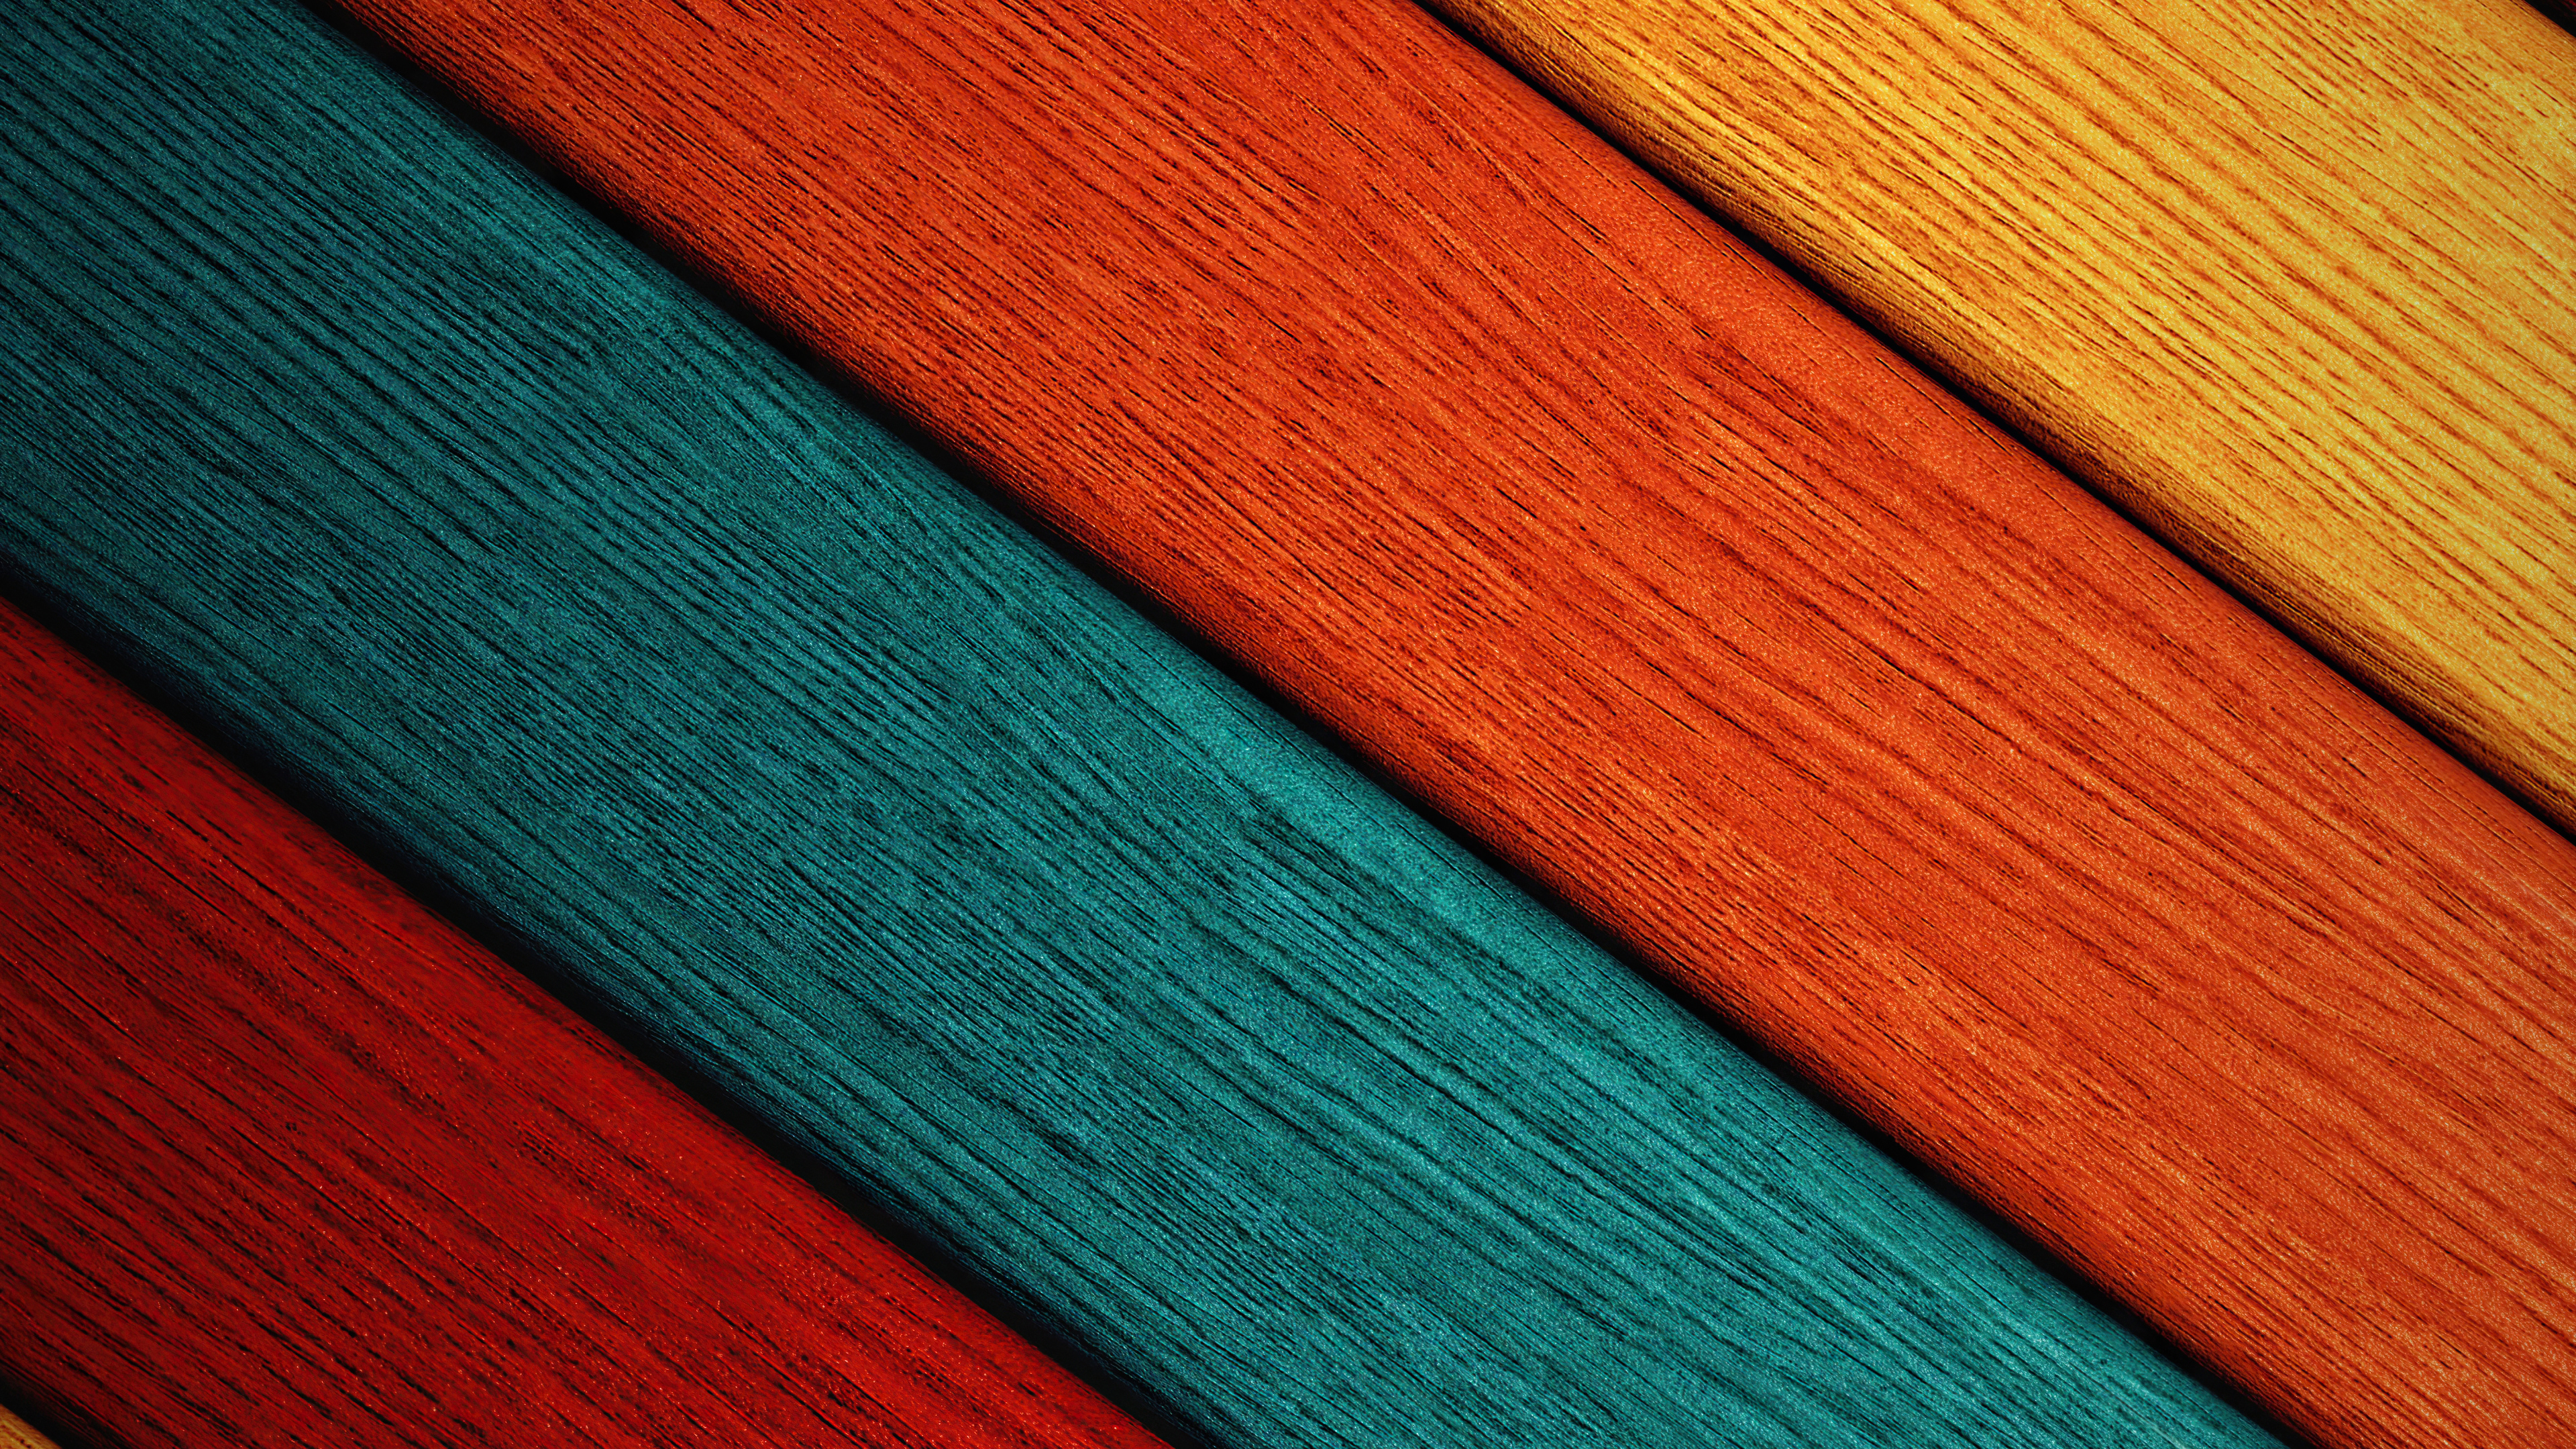 colorful wood pattern abstract 4k 1608576727 - Colorful Wood Pattern Abstract 4k - Colorful Wood Pattern Abstract 4k wallpapers